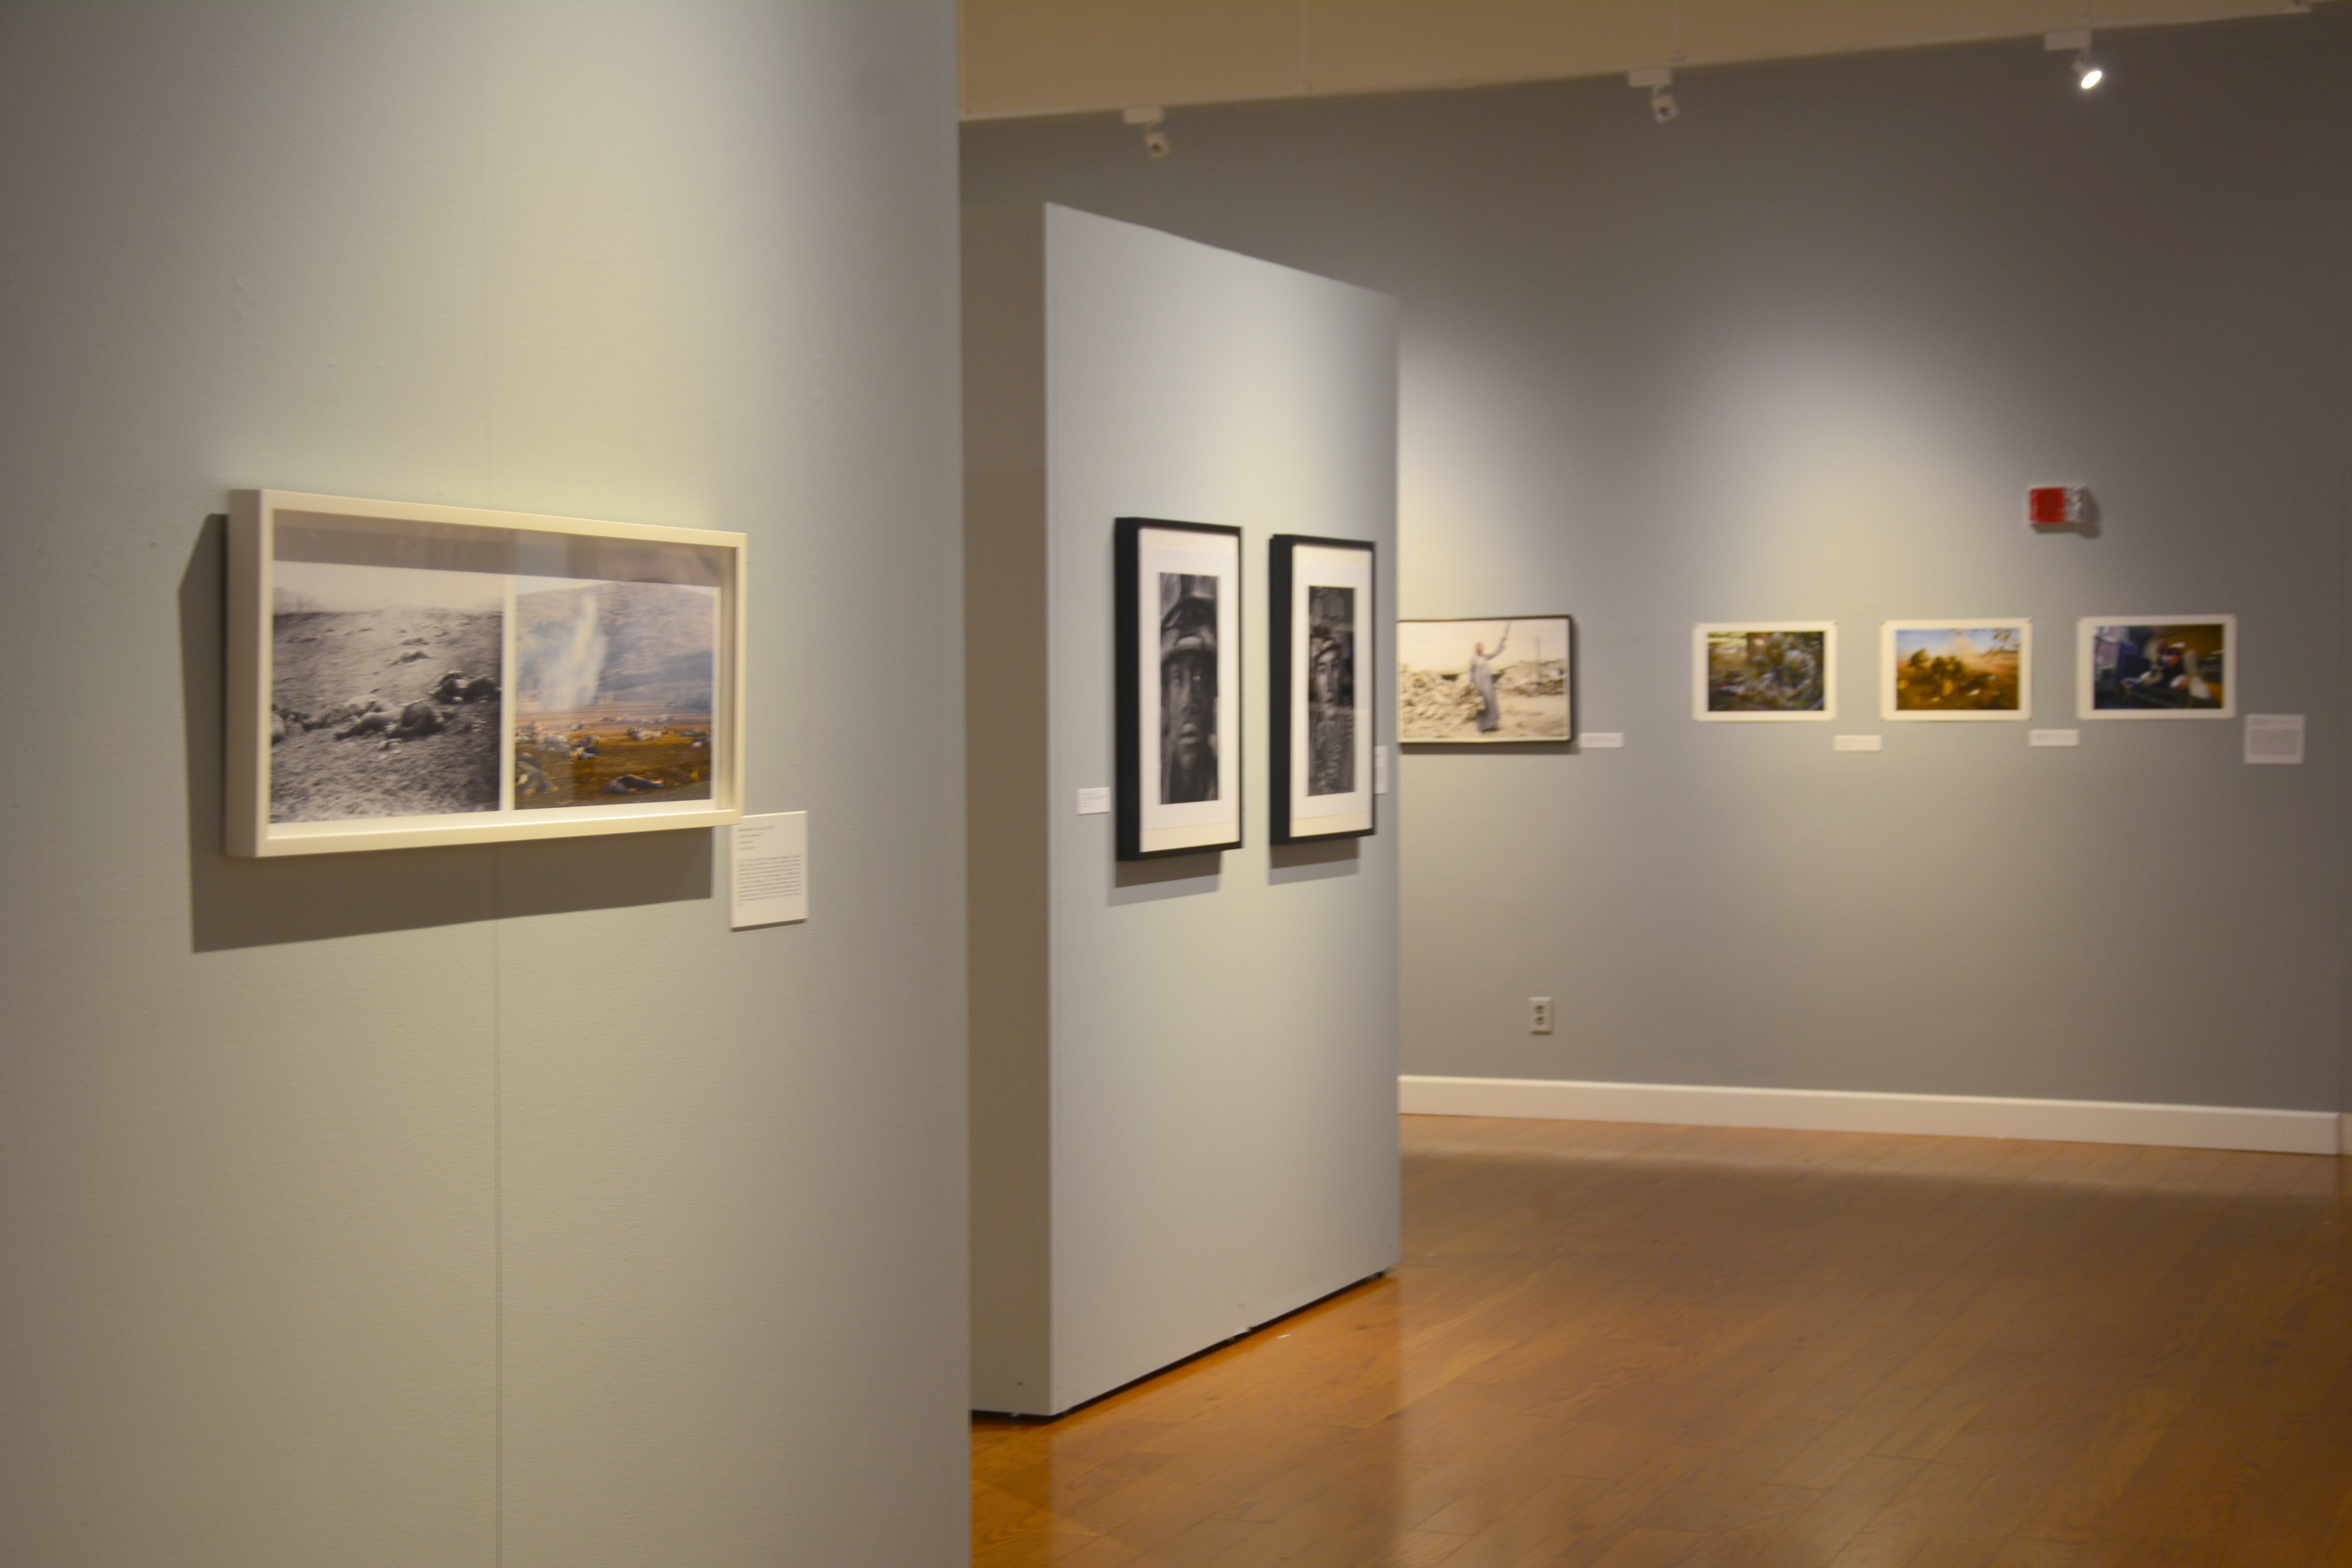 Installation view of  Gettysburg Comparison  in the exhibition  Conflict and Consequences  at Beloit College. Curated by Todd Tubutis